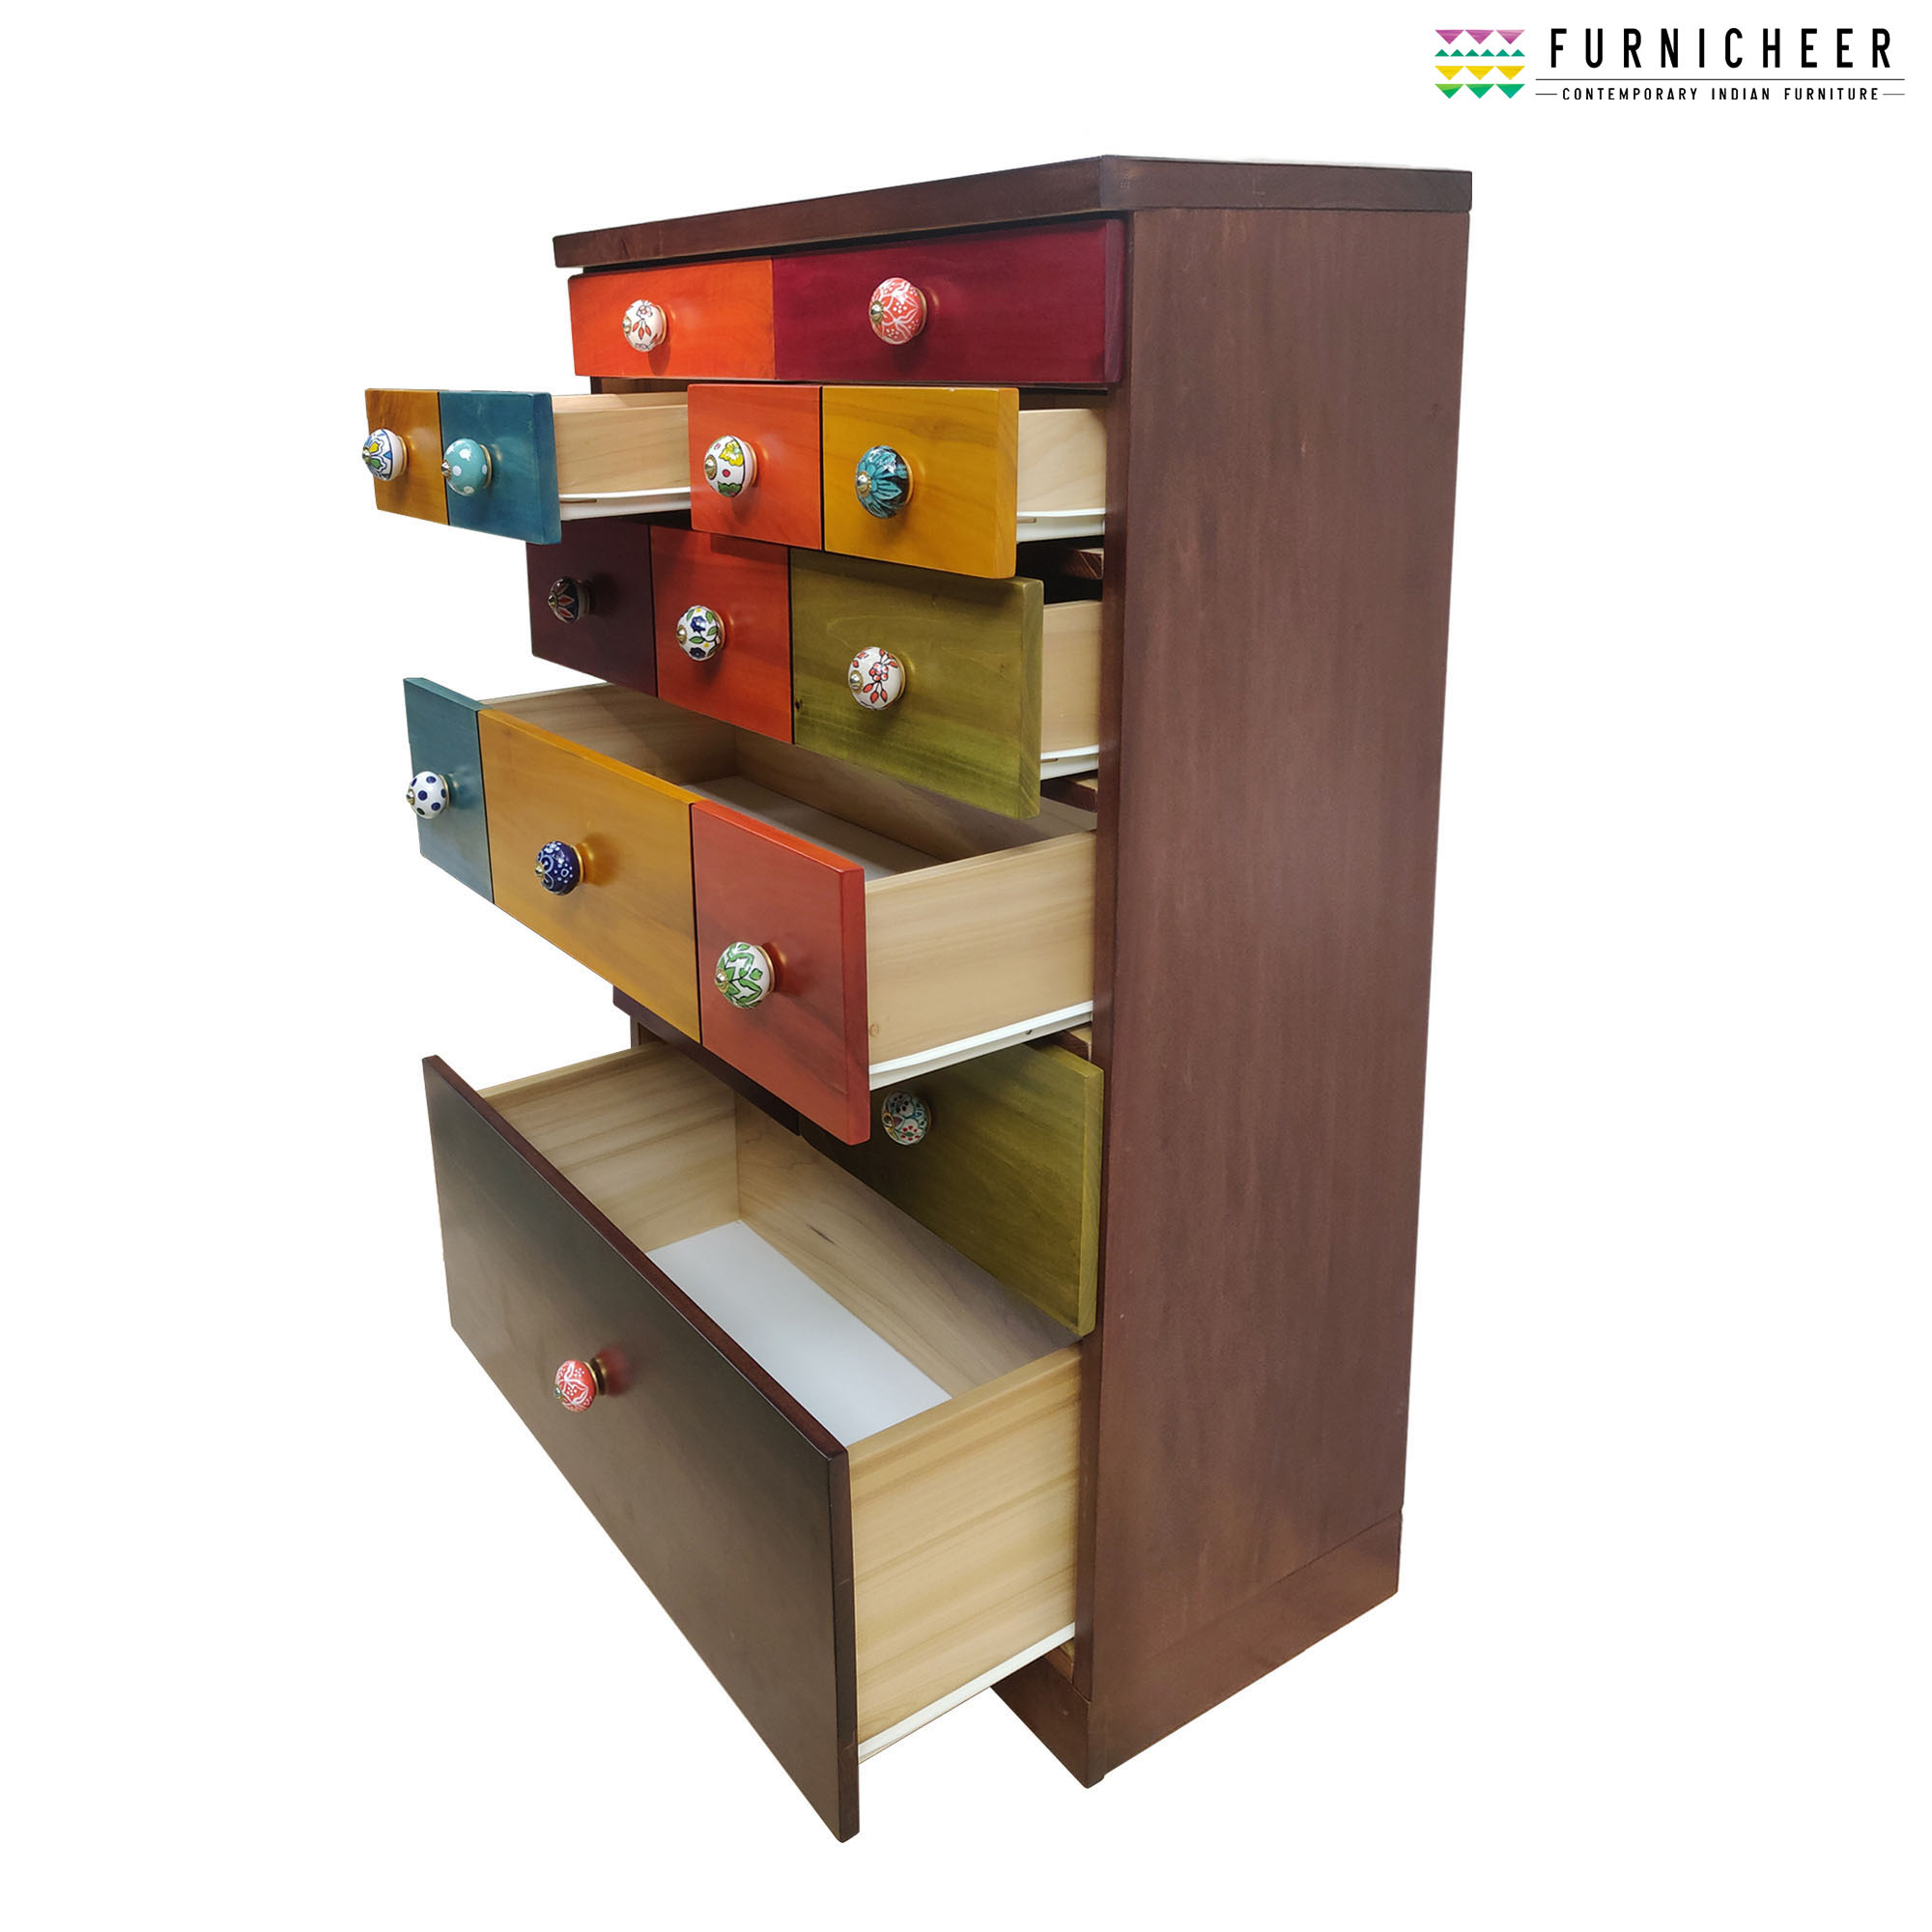 3.CHEST OF DRAWER SKU CDFS0002